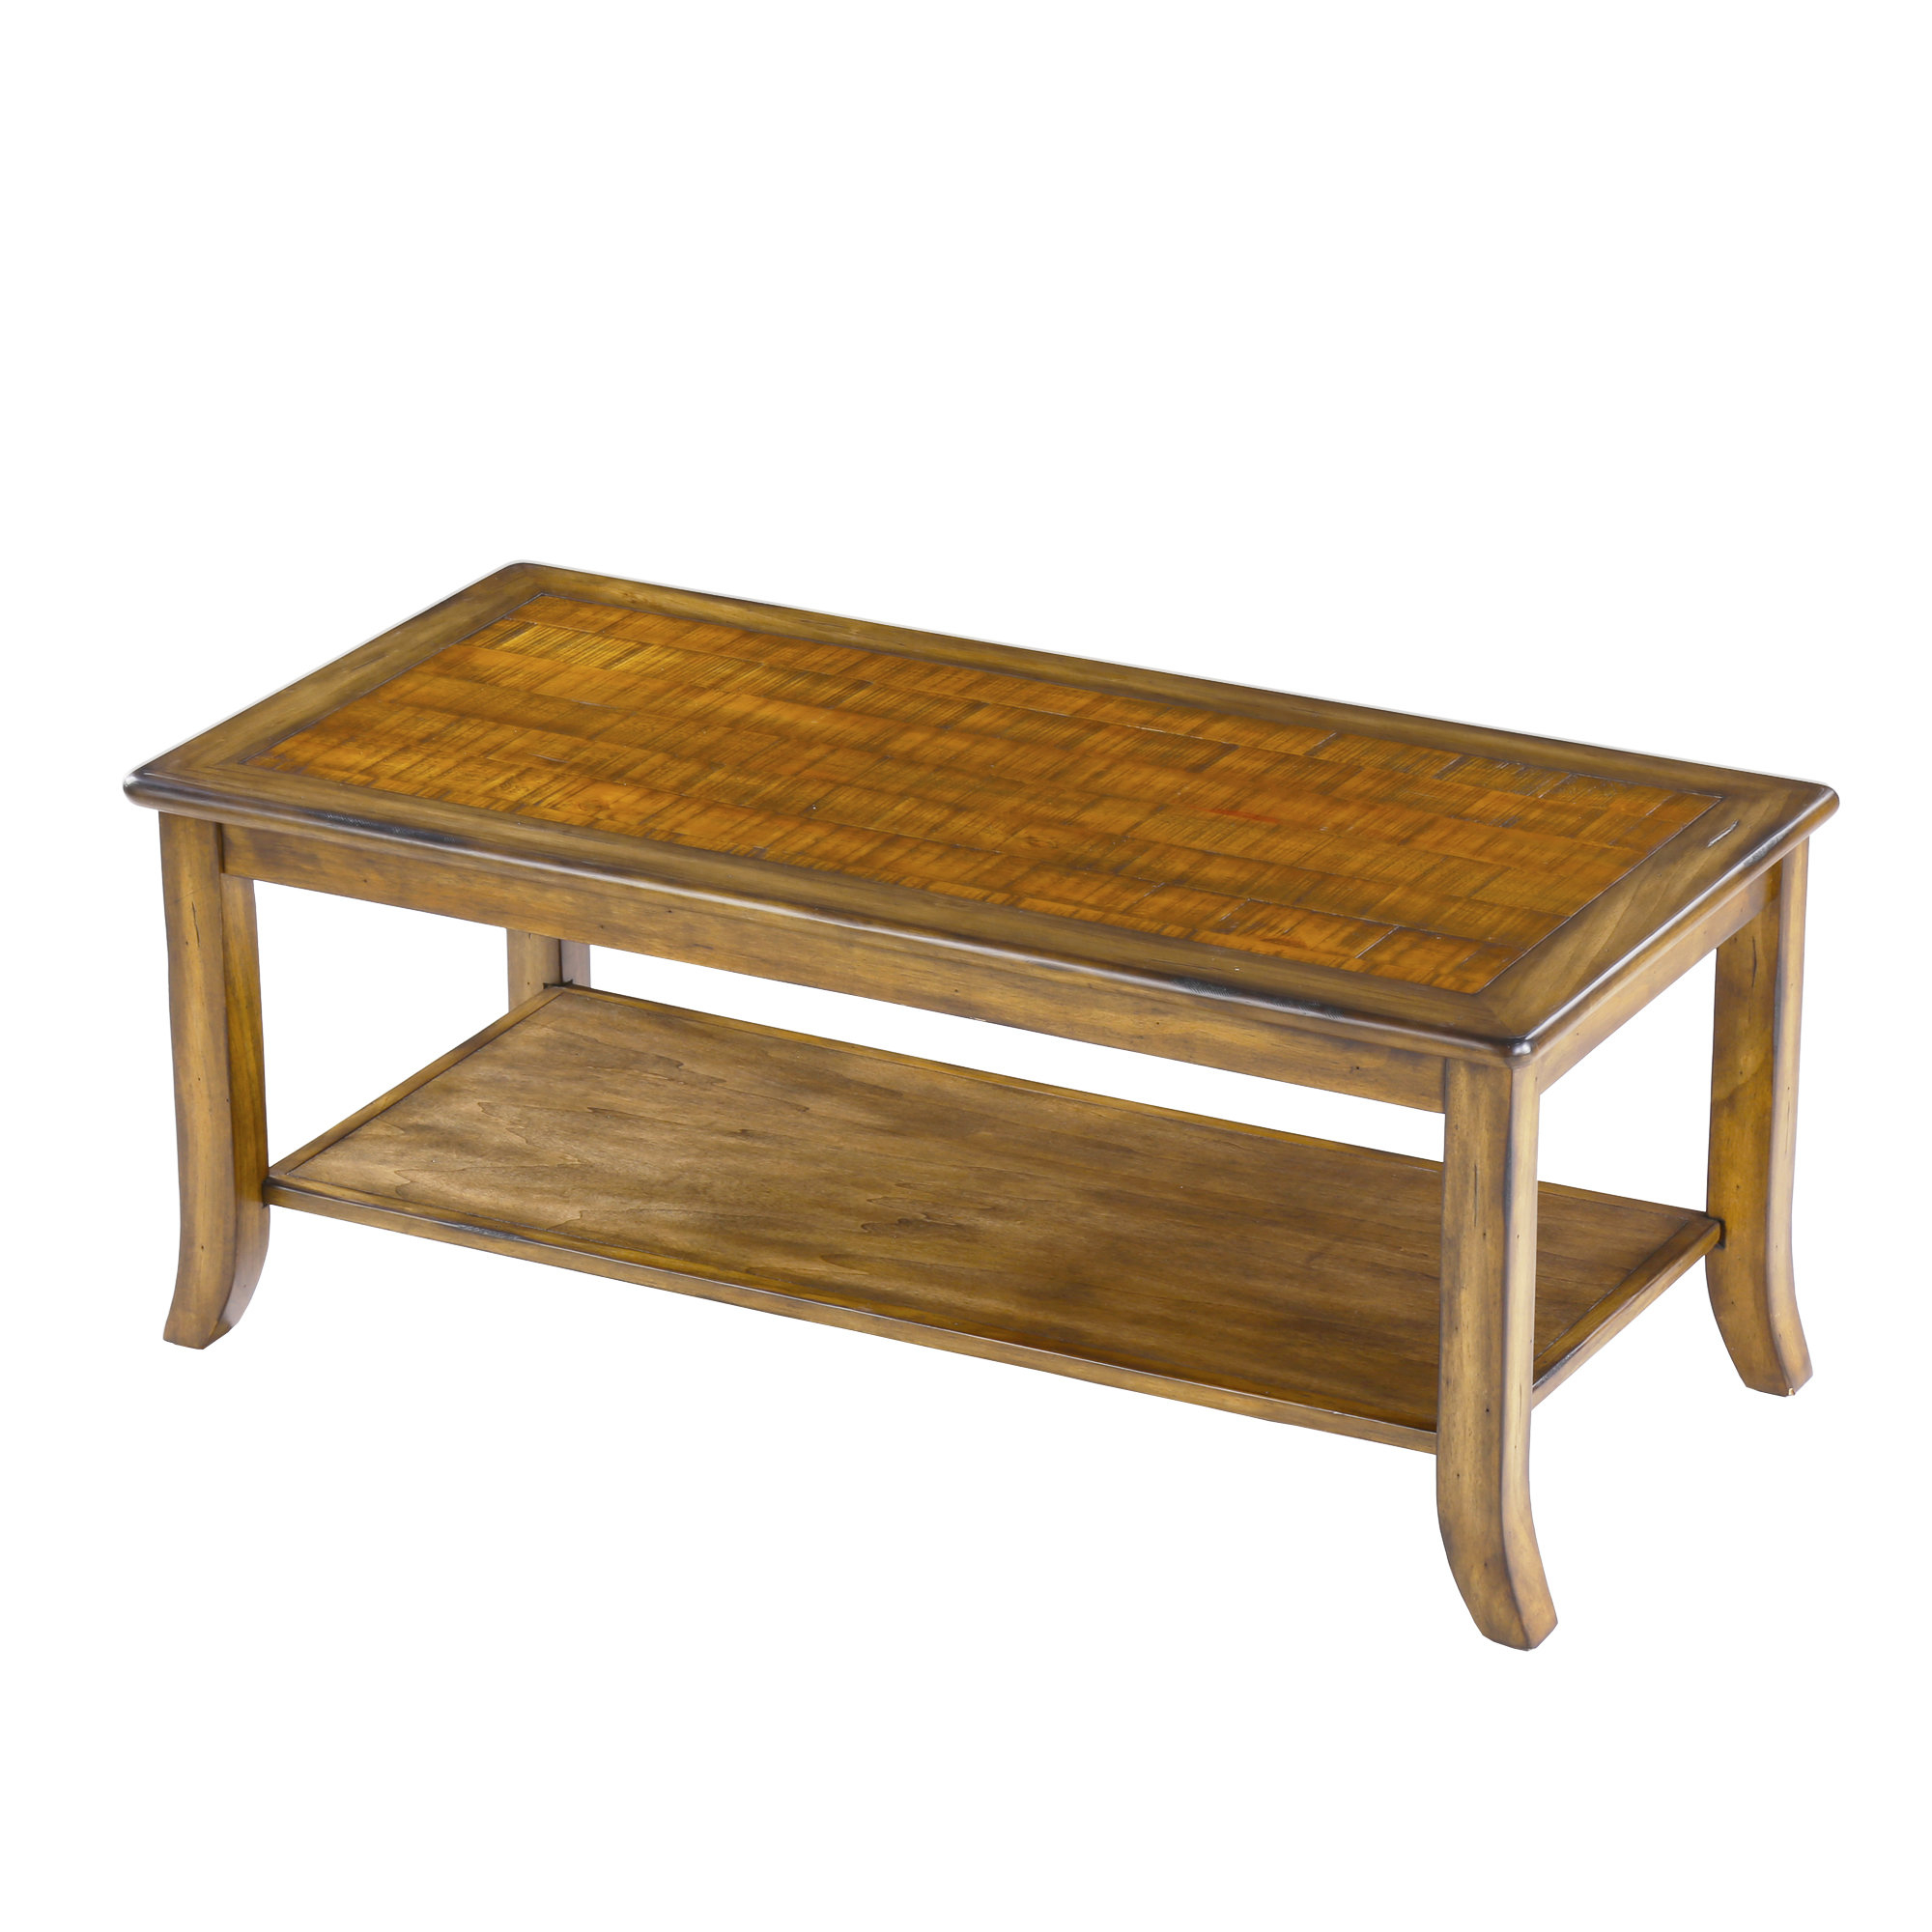 Millwood Pines Merlin Wood Top Coffee Table Wayfair pertaining to size 2000 X 2000